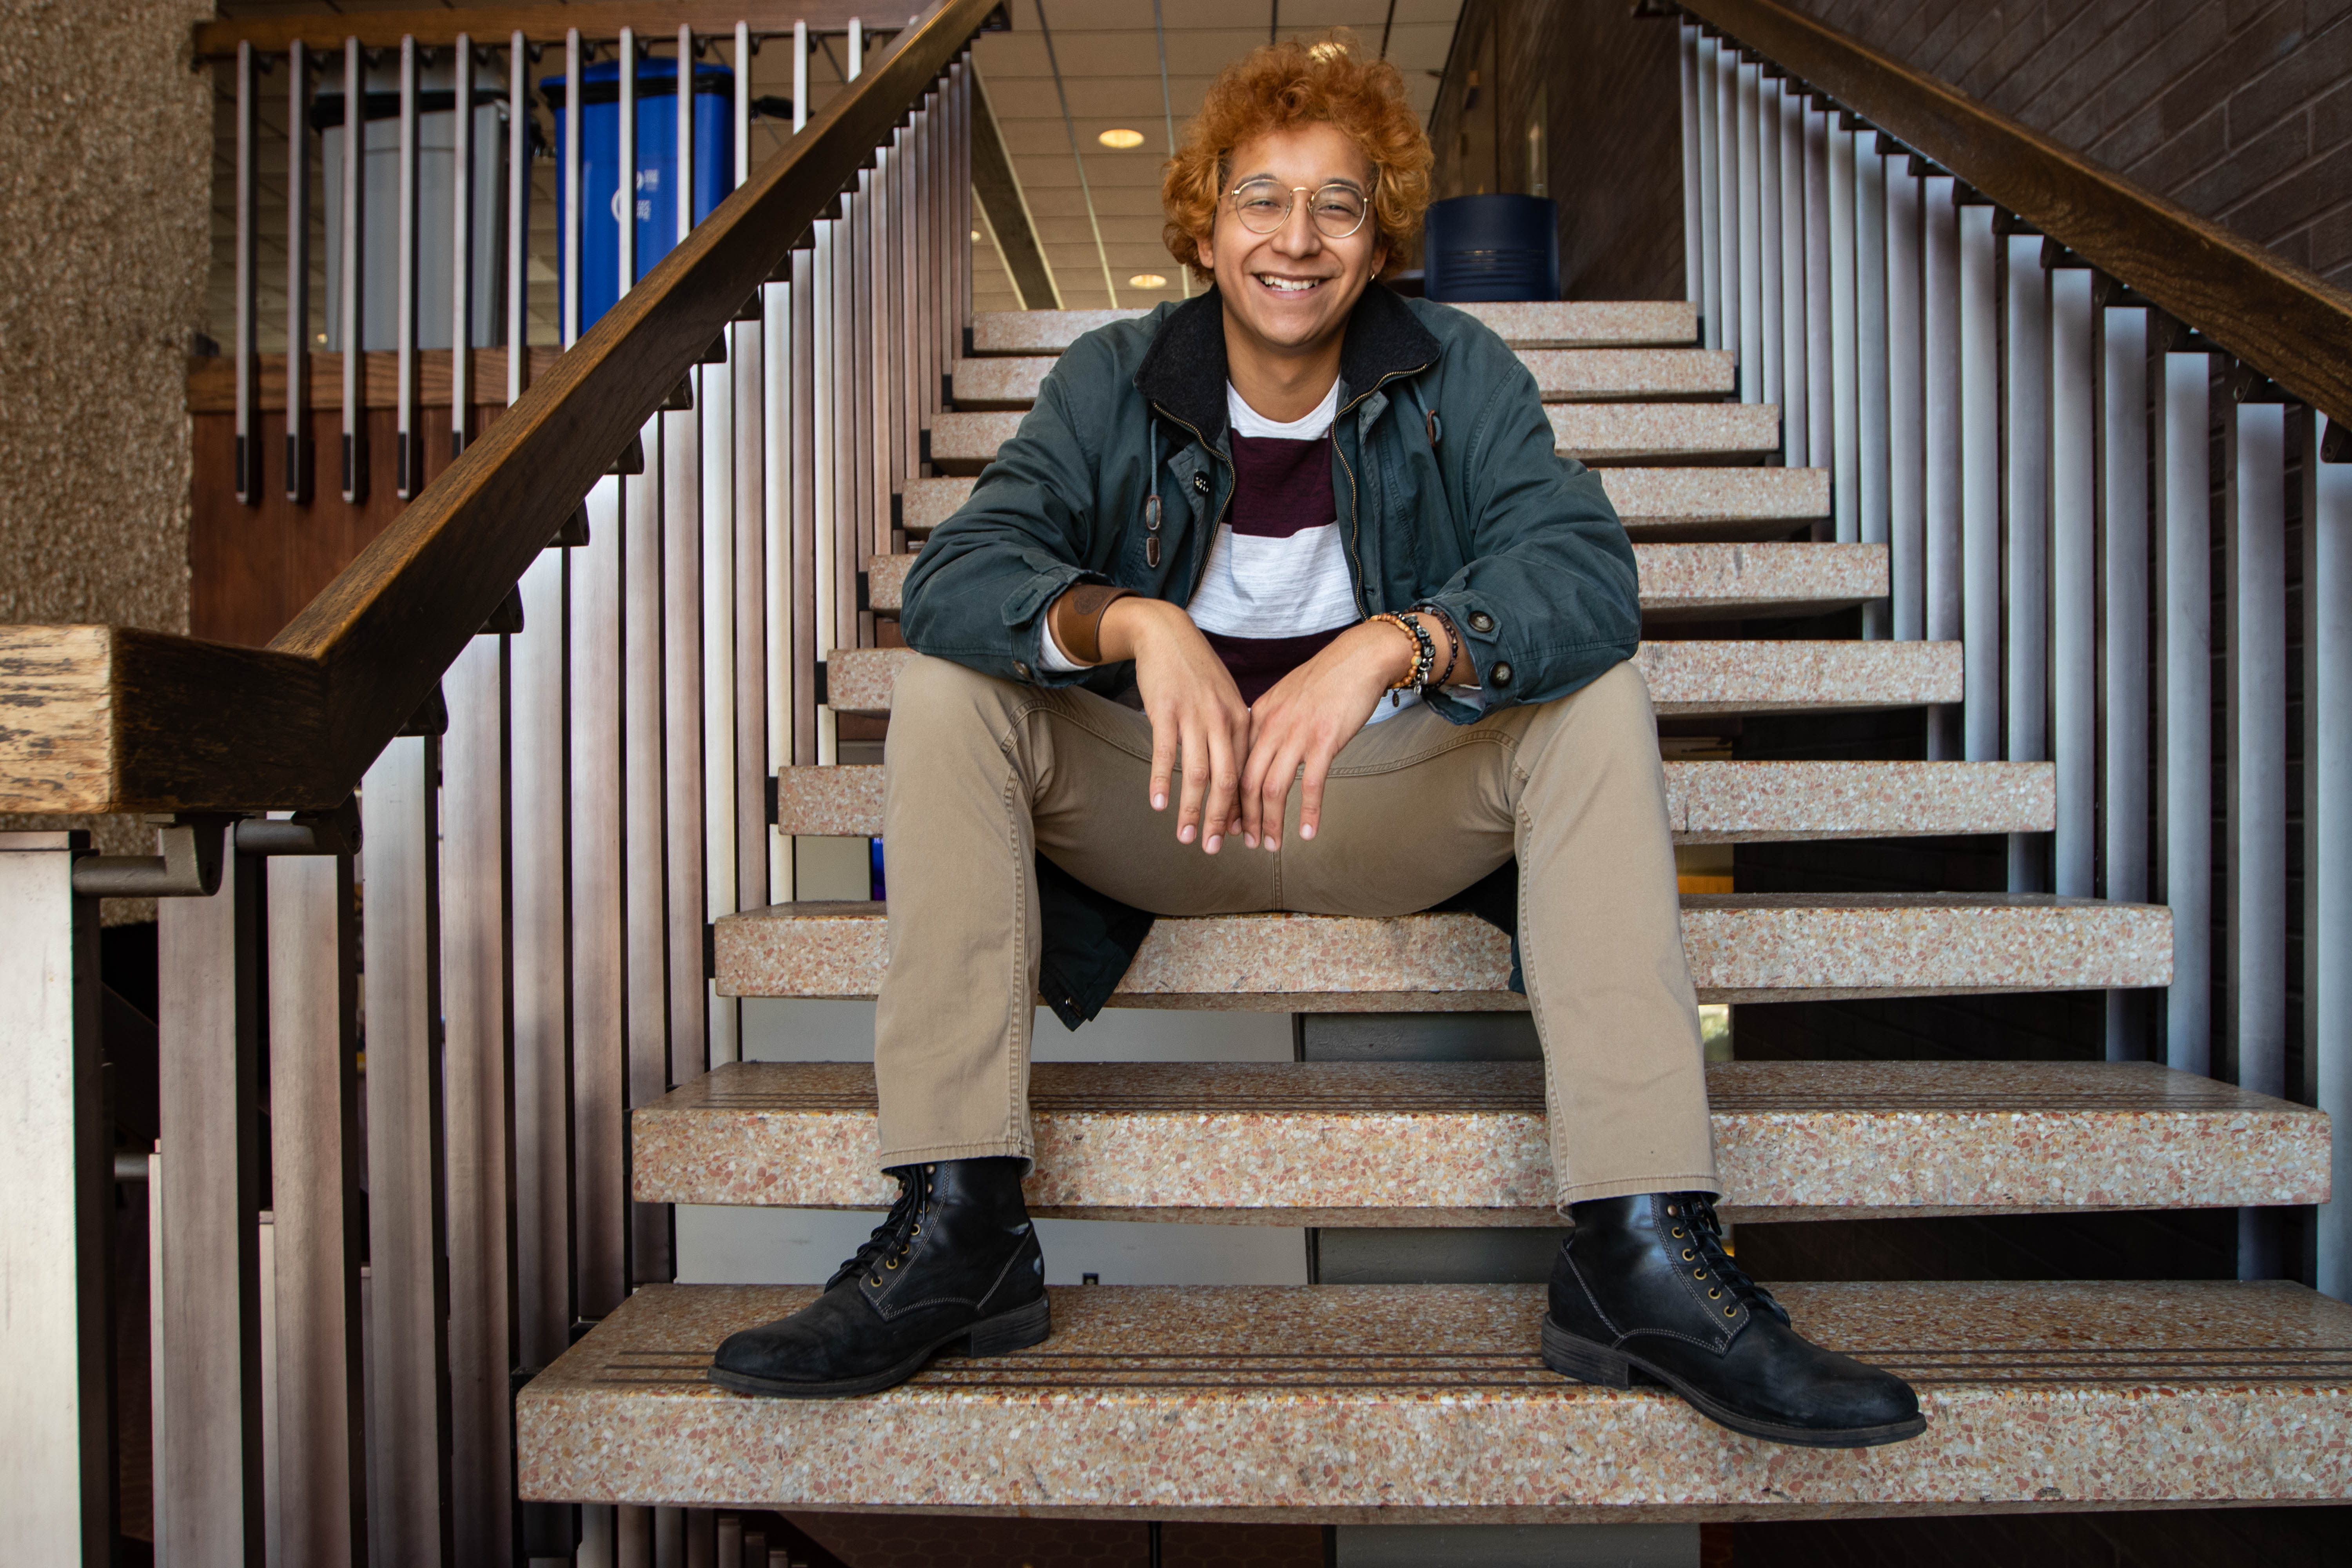 Luis posing on the steps on Wilson Hall.